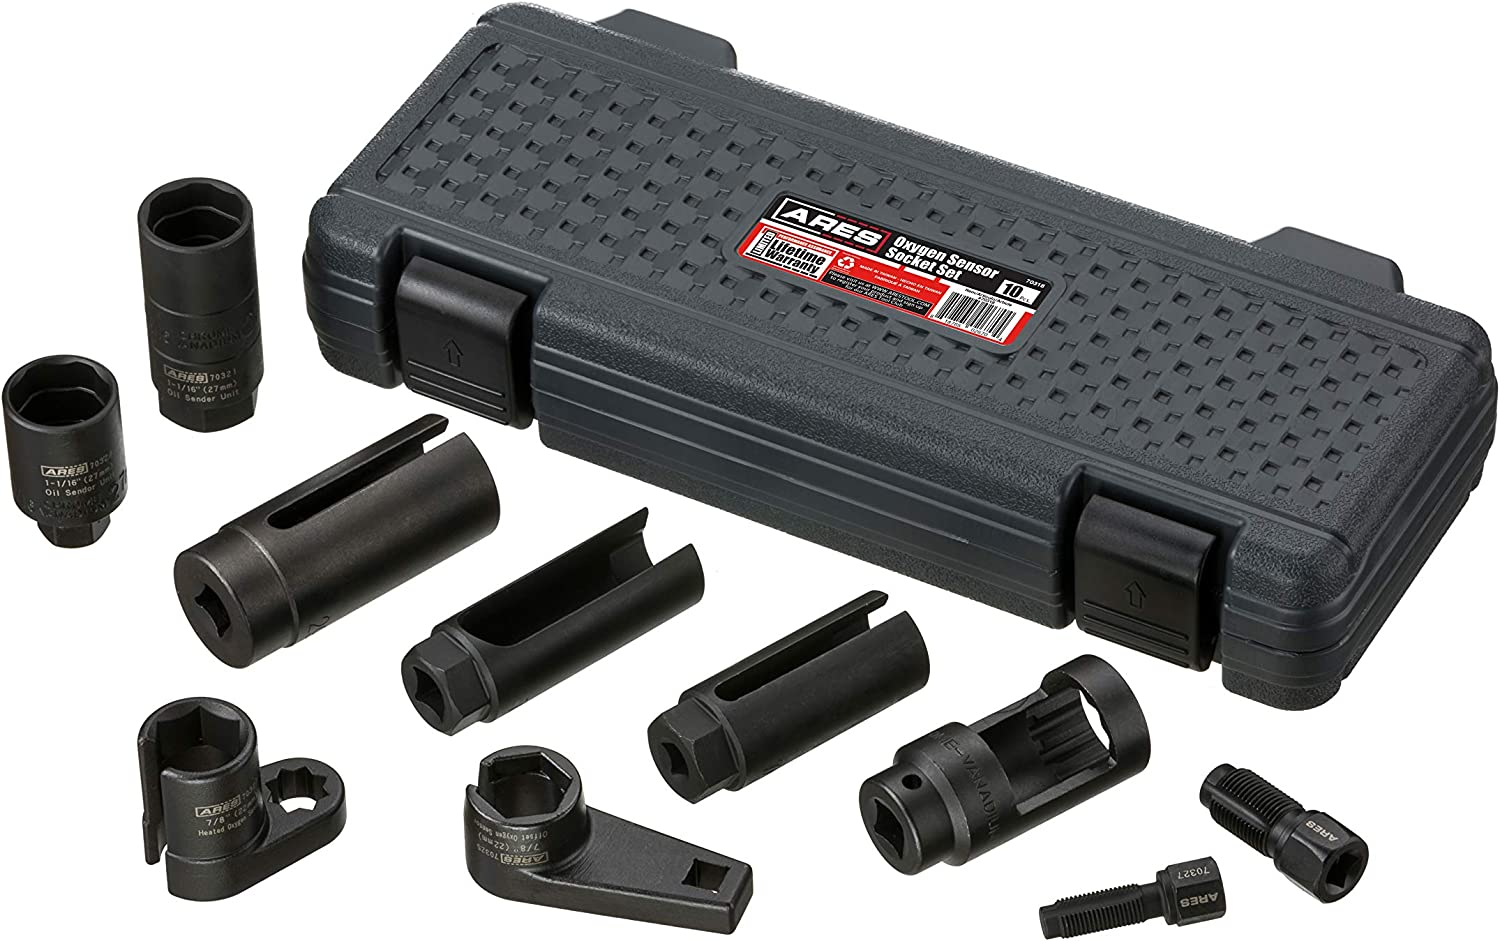 ARES 70318-10-Piece Oxygen Sensor Socket Set - Set Includes Thread Chasers, Oxygen Sensor Sockets, an Injector Socket and Oil Sending Unit Sockets - High Strength Chrome Vanadium Steel